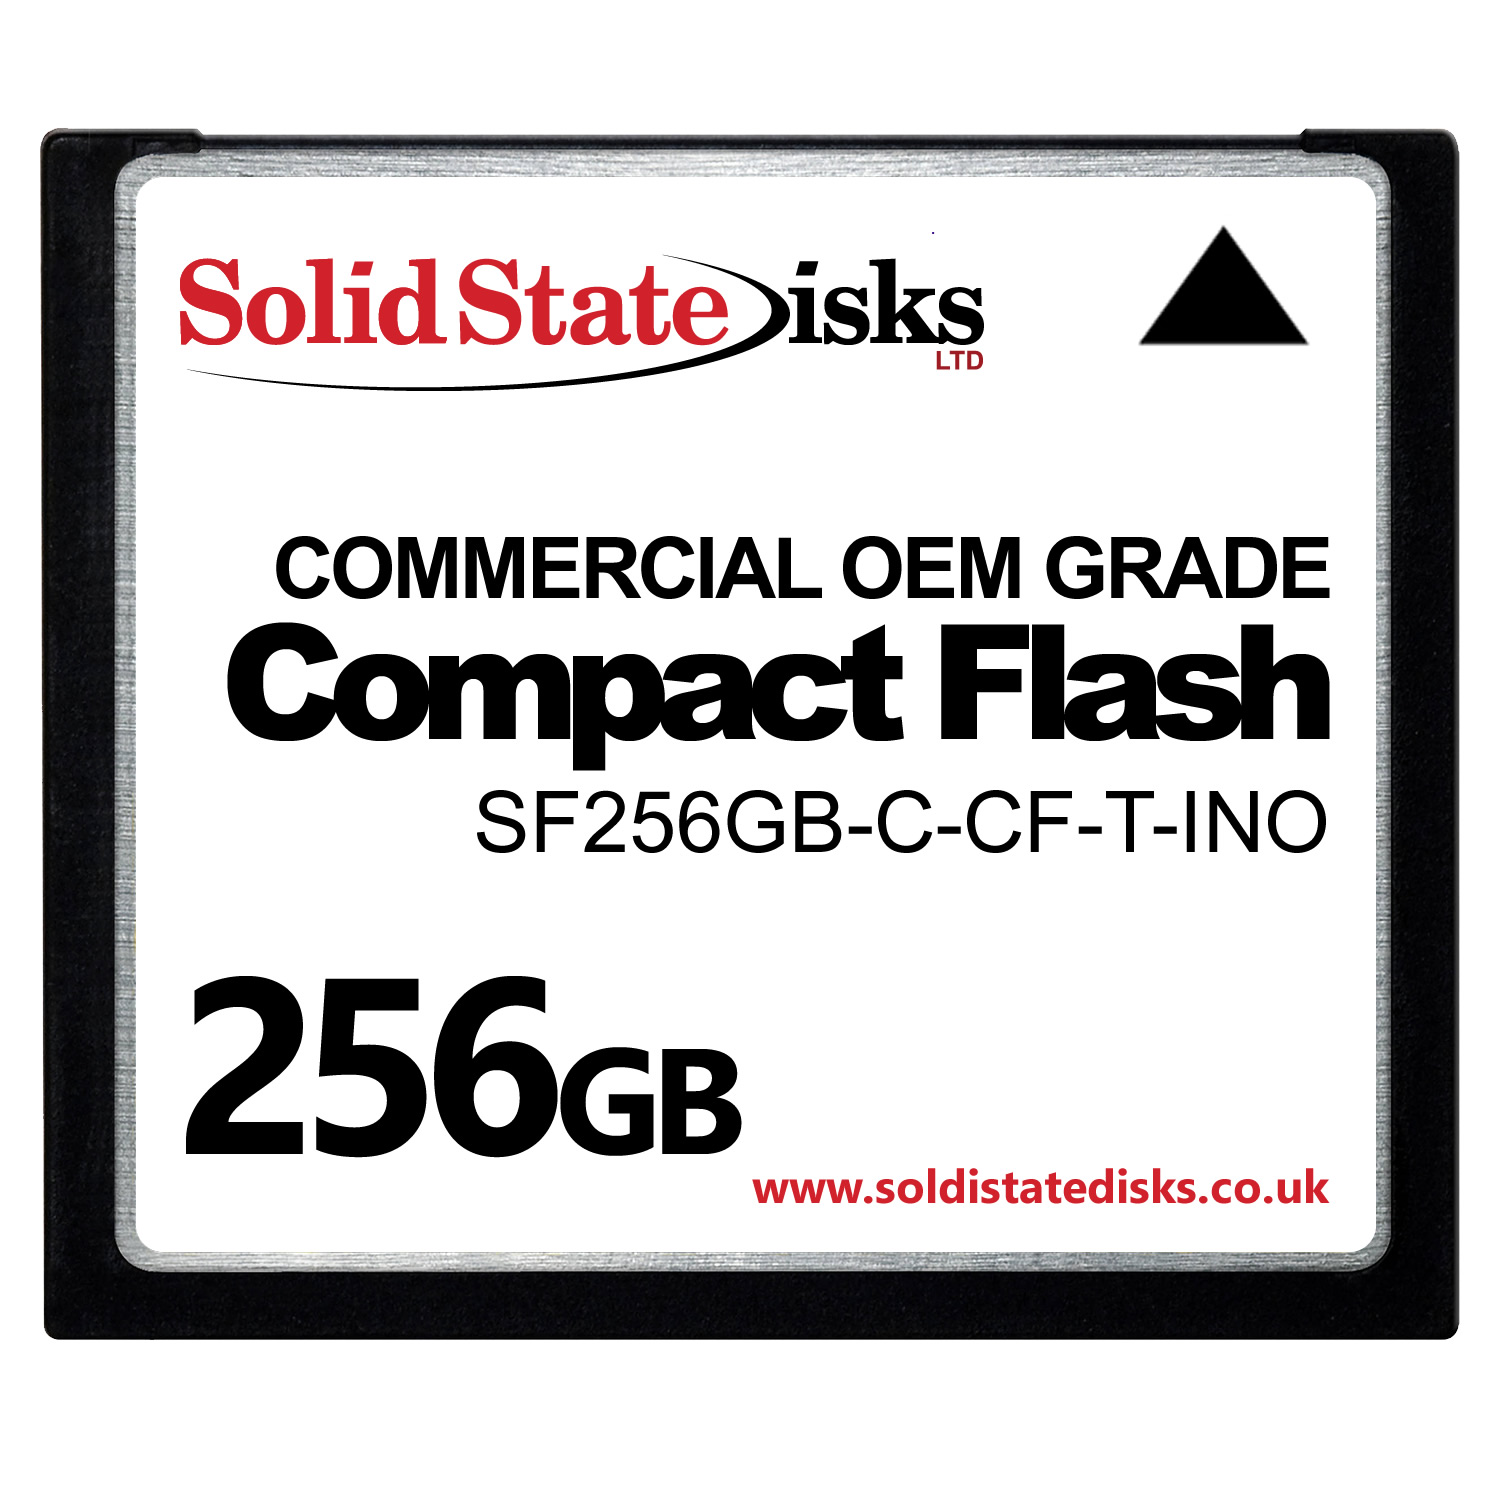 SCSIFLASH-CF Commercial OEM Grade Compact Flash Card 256GB